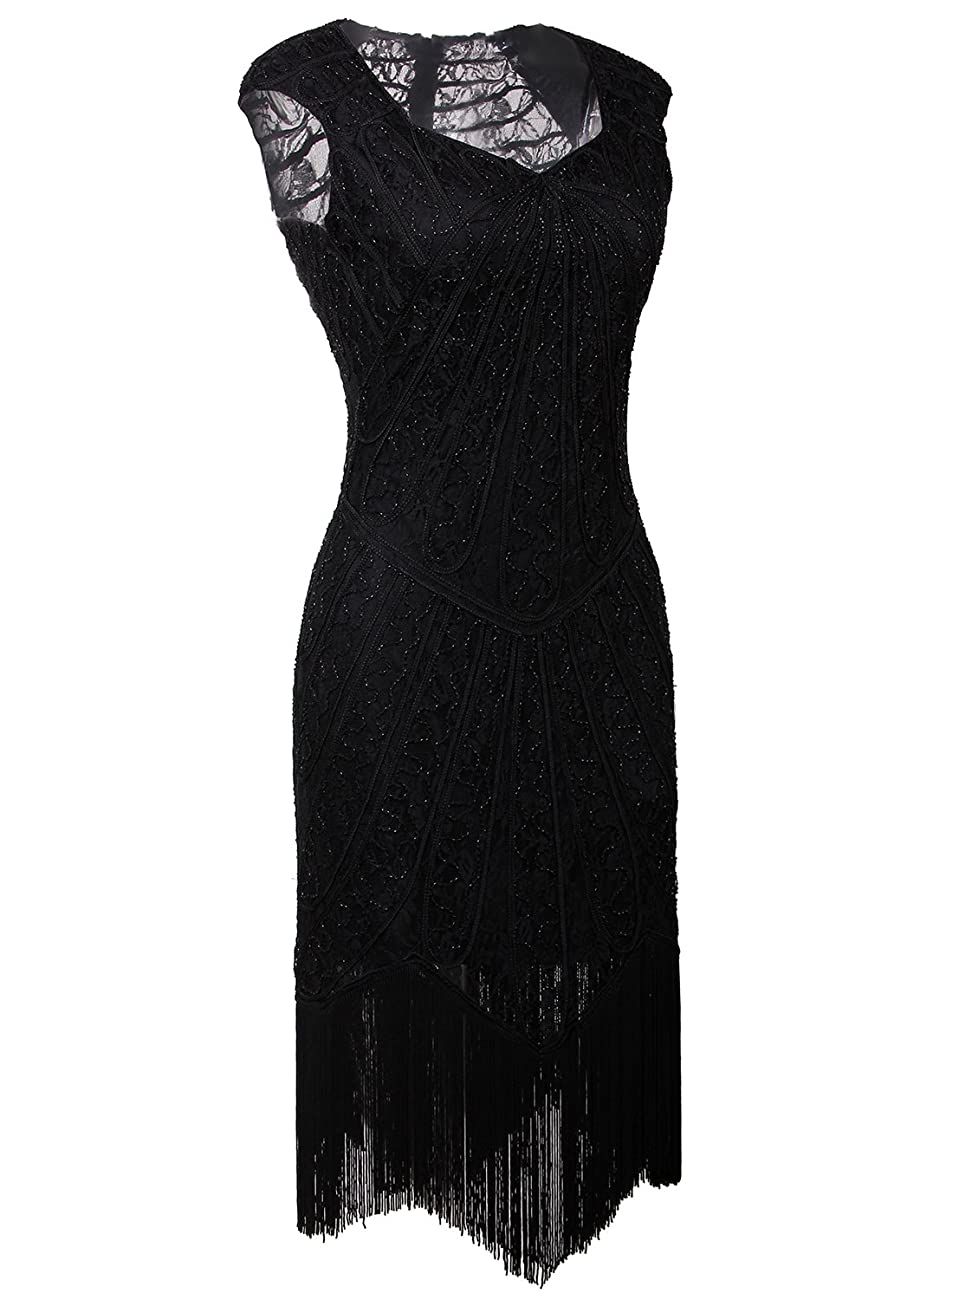 Vijiv Vintage 1920s Inspired Embellished Beaded Lace Cocktail Flapper Dress 1